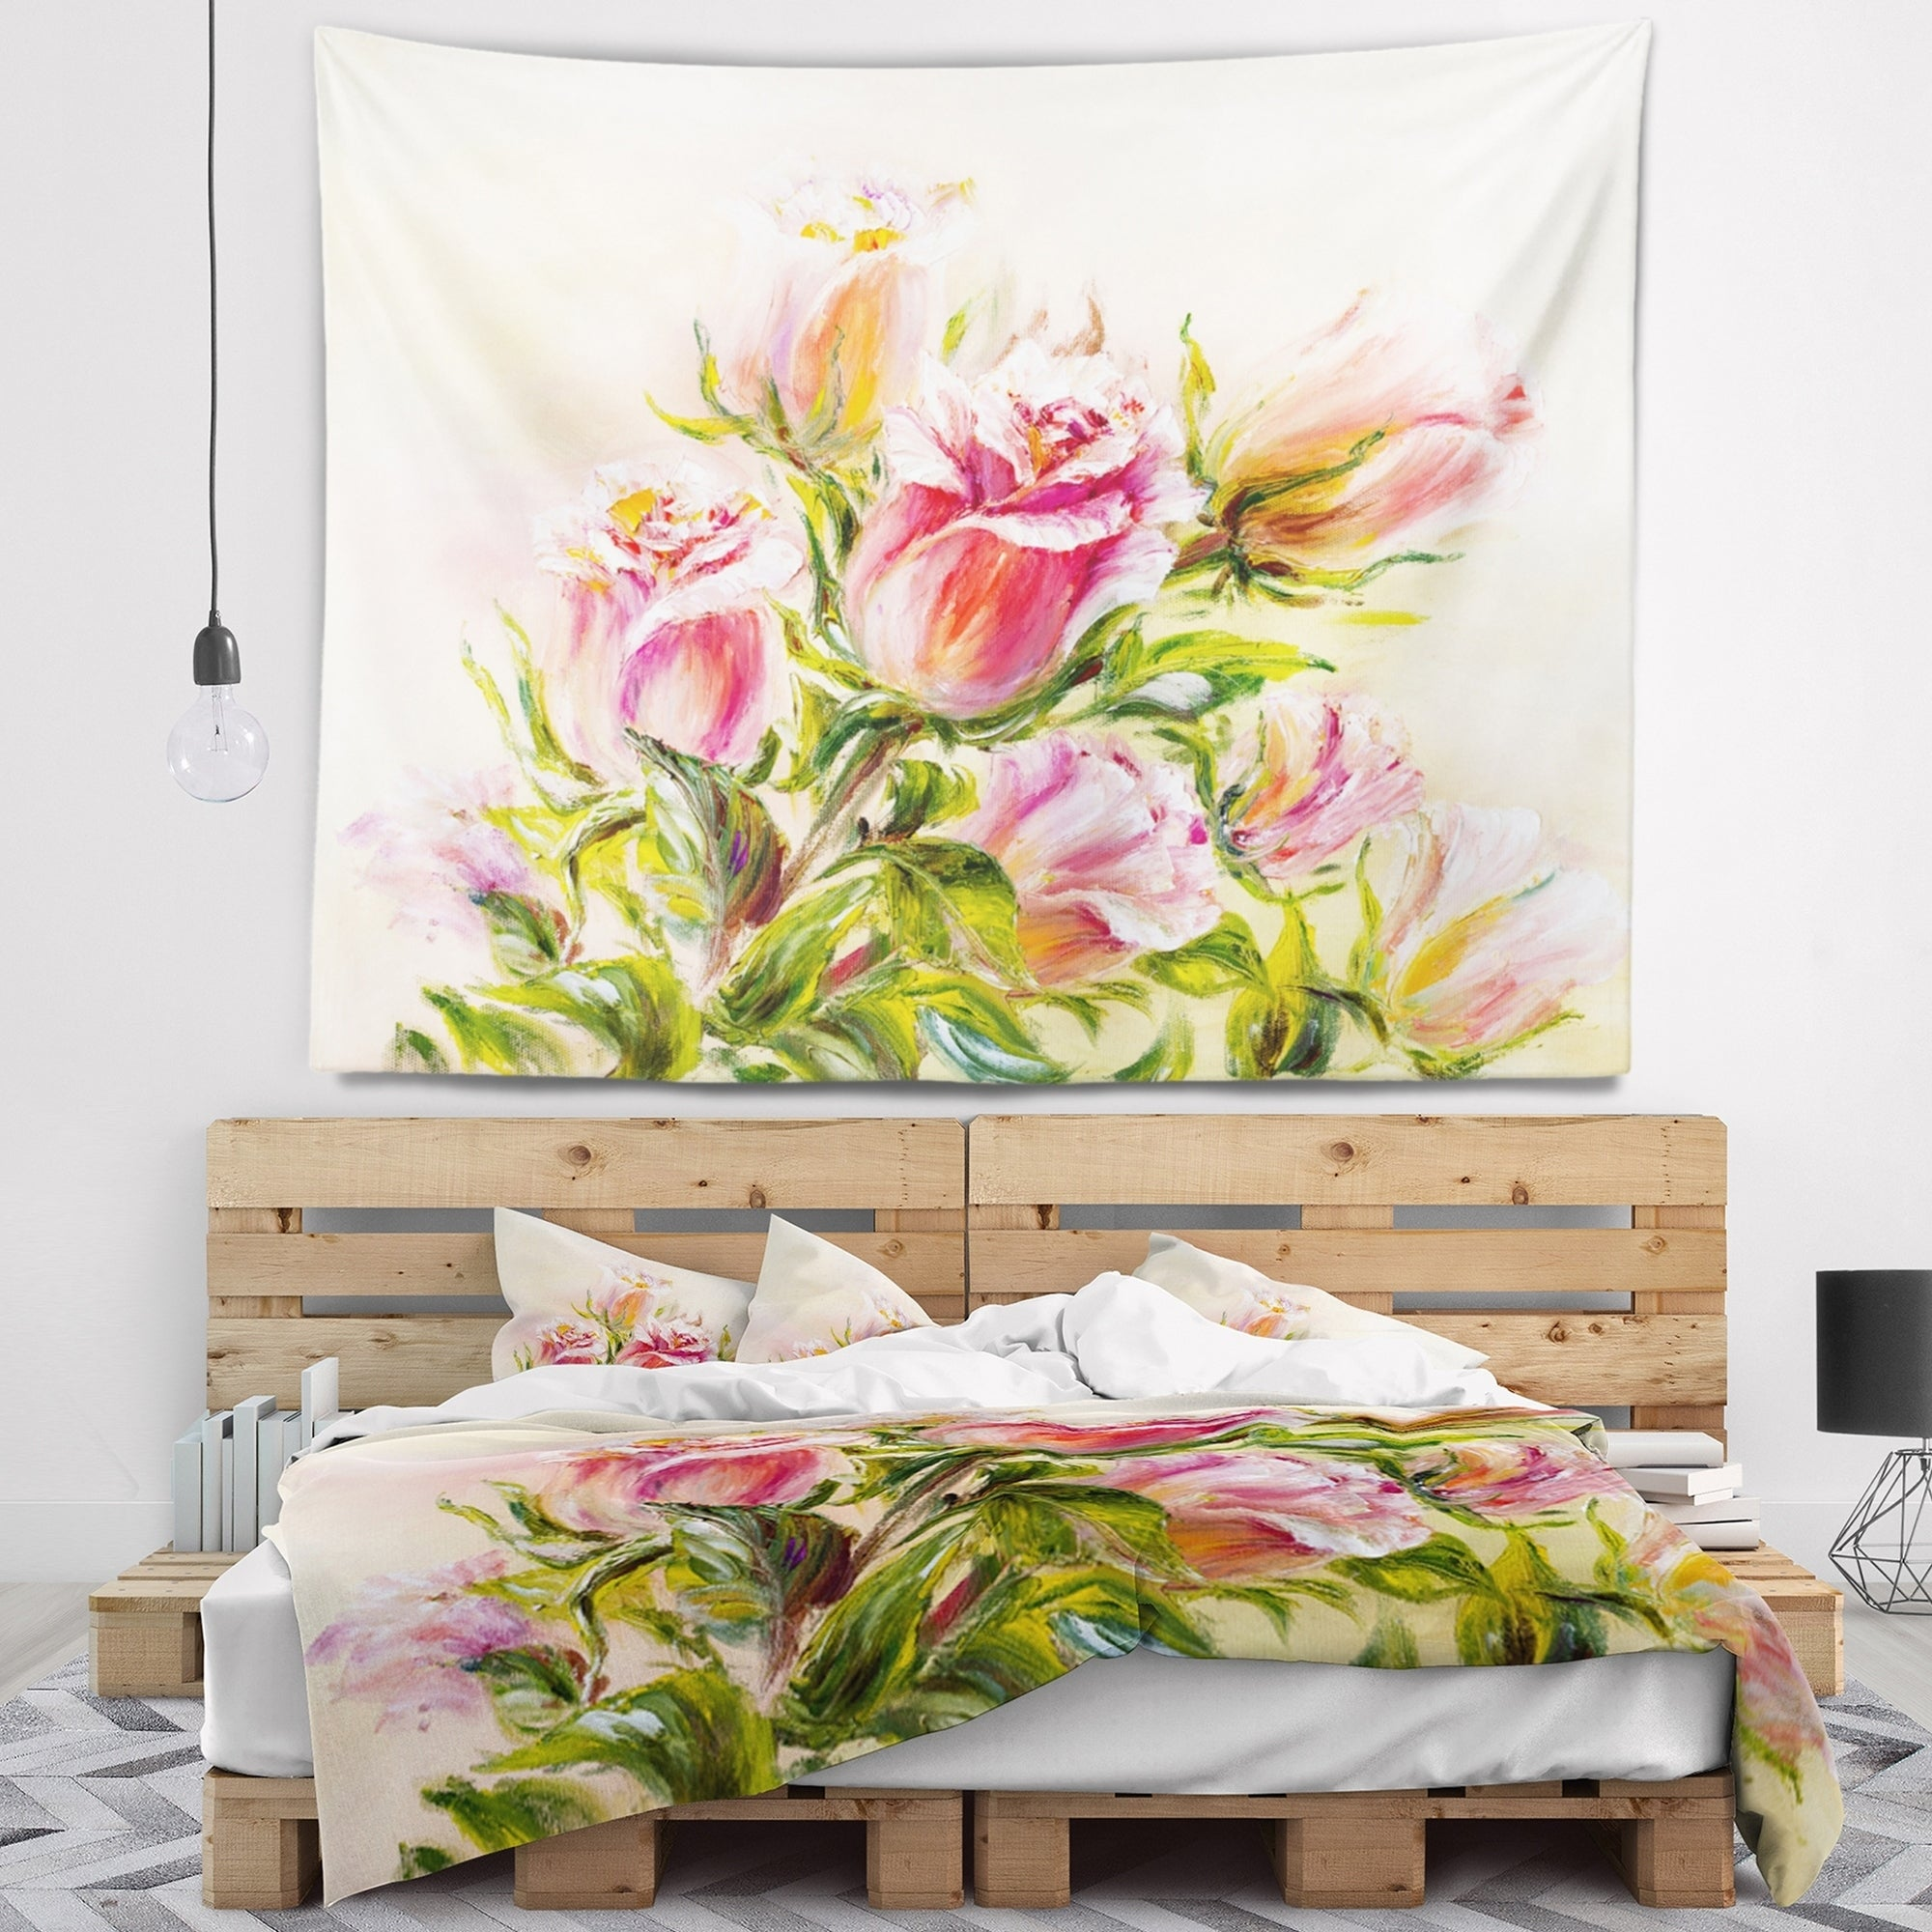 Outstanding Floral Wall Decor Inspiration - Wall Art Collections ...